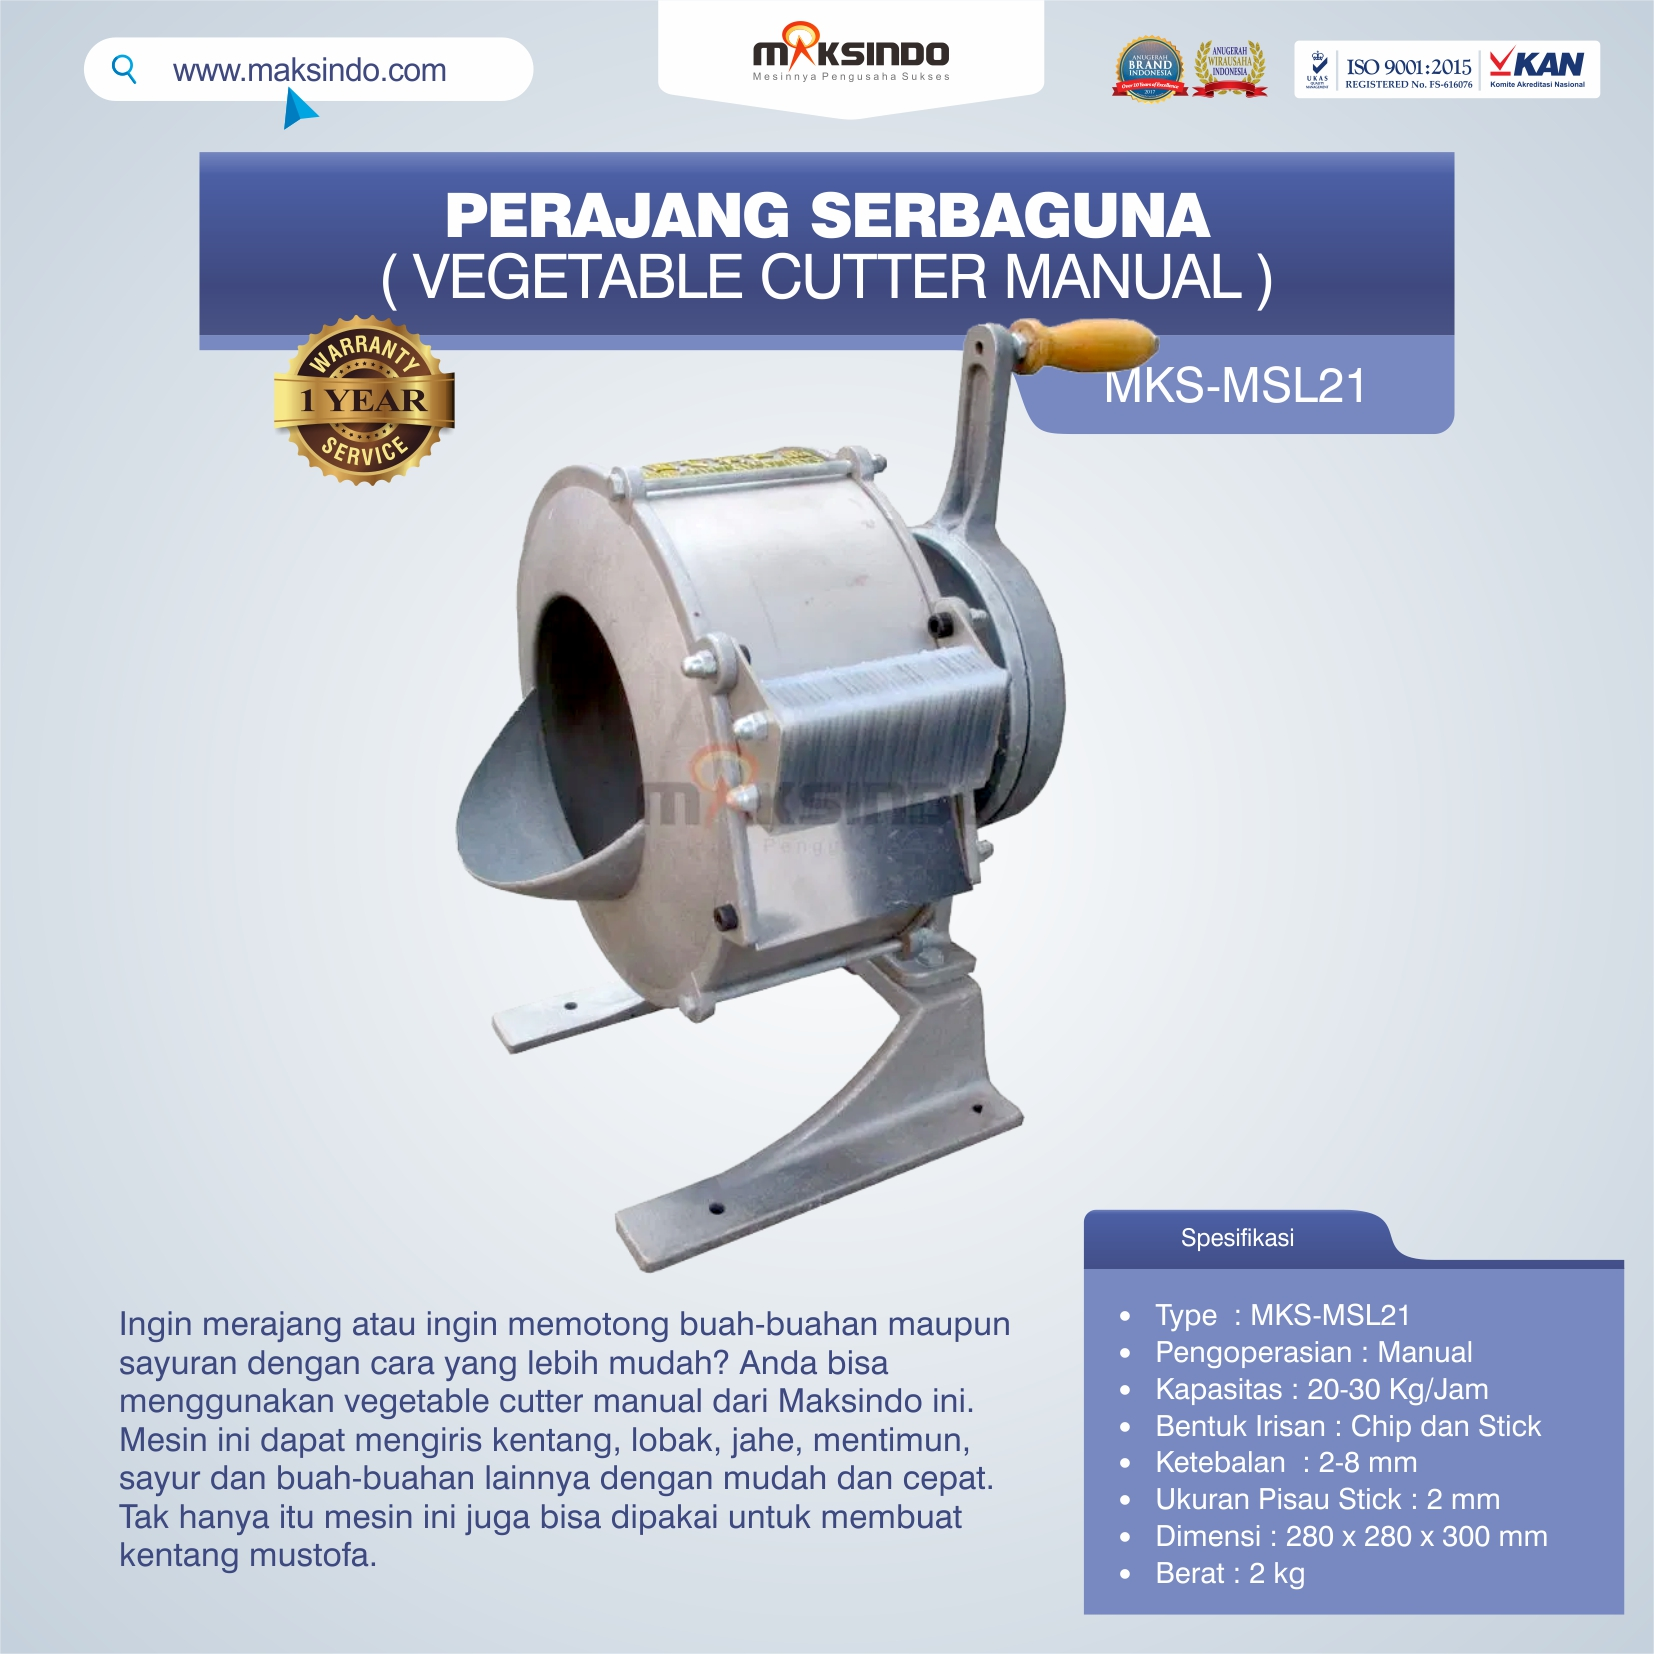 Jual Perajang Serbaguna (Vegetable Cutter Manual) MKS-MSL21 di Solo